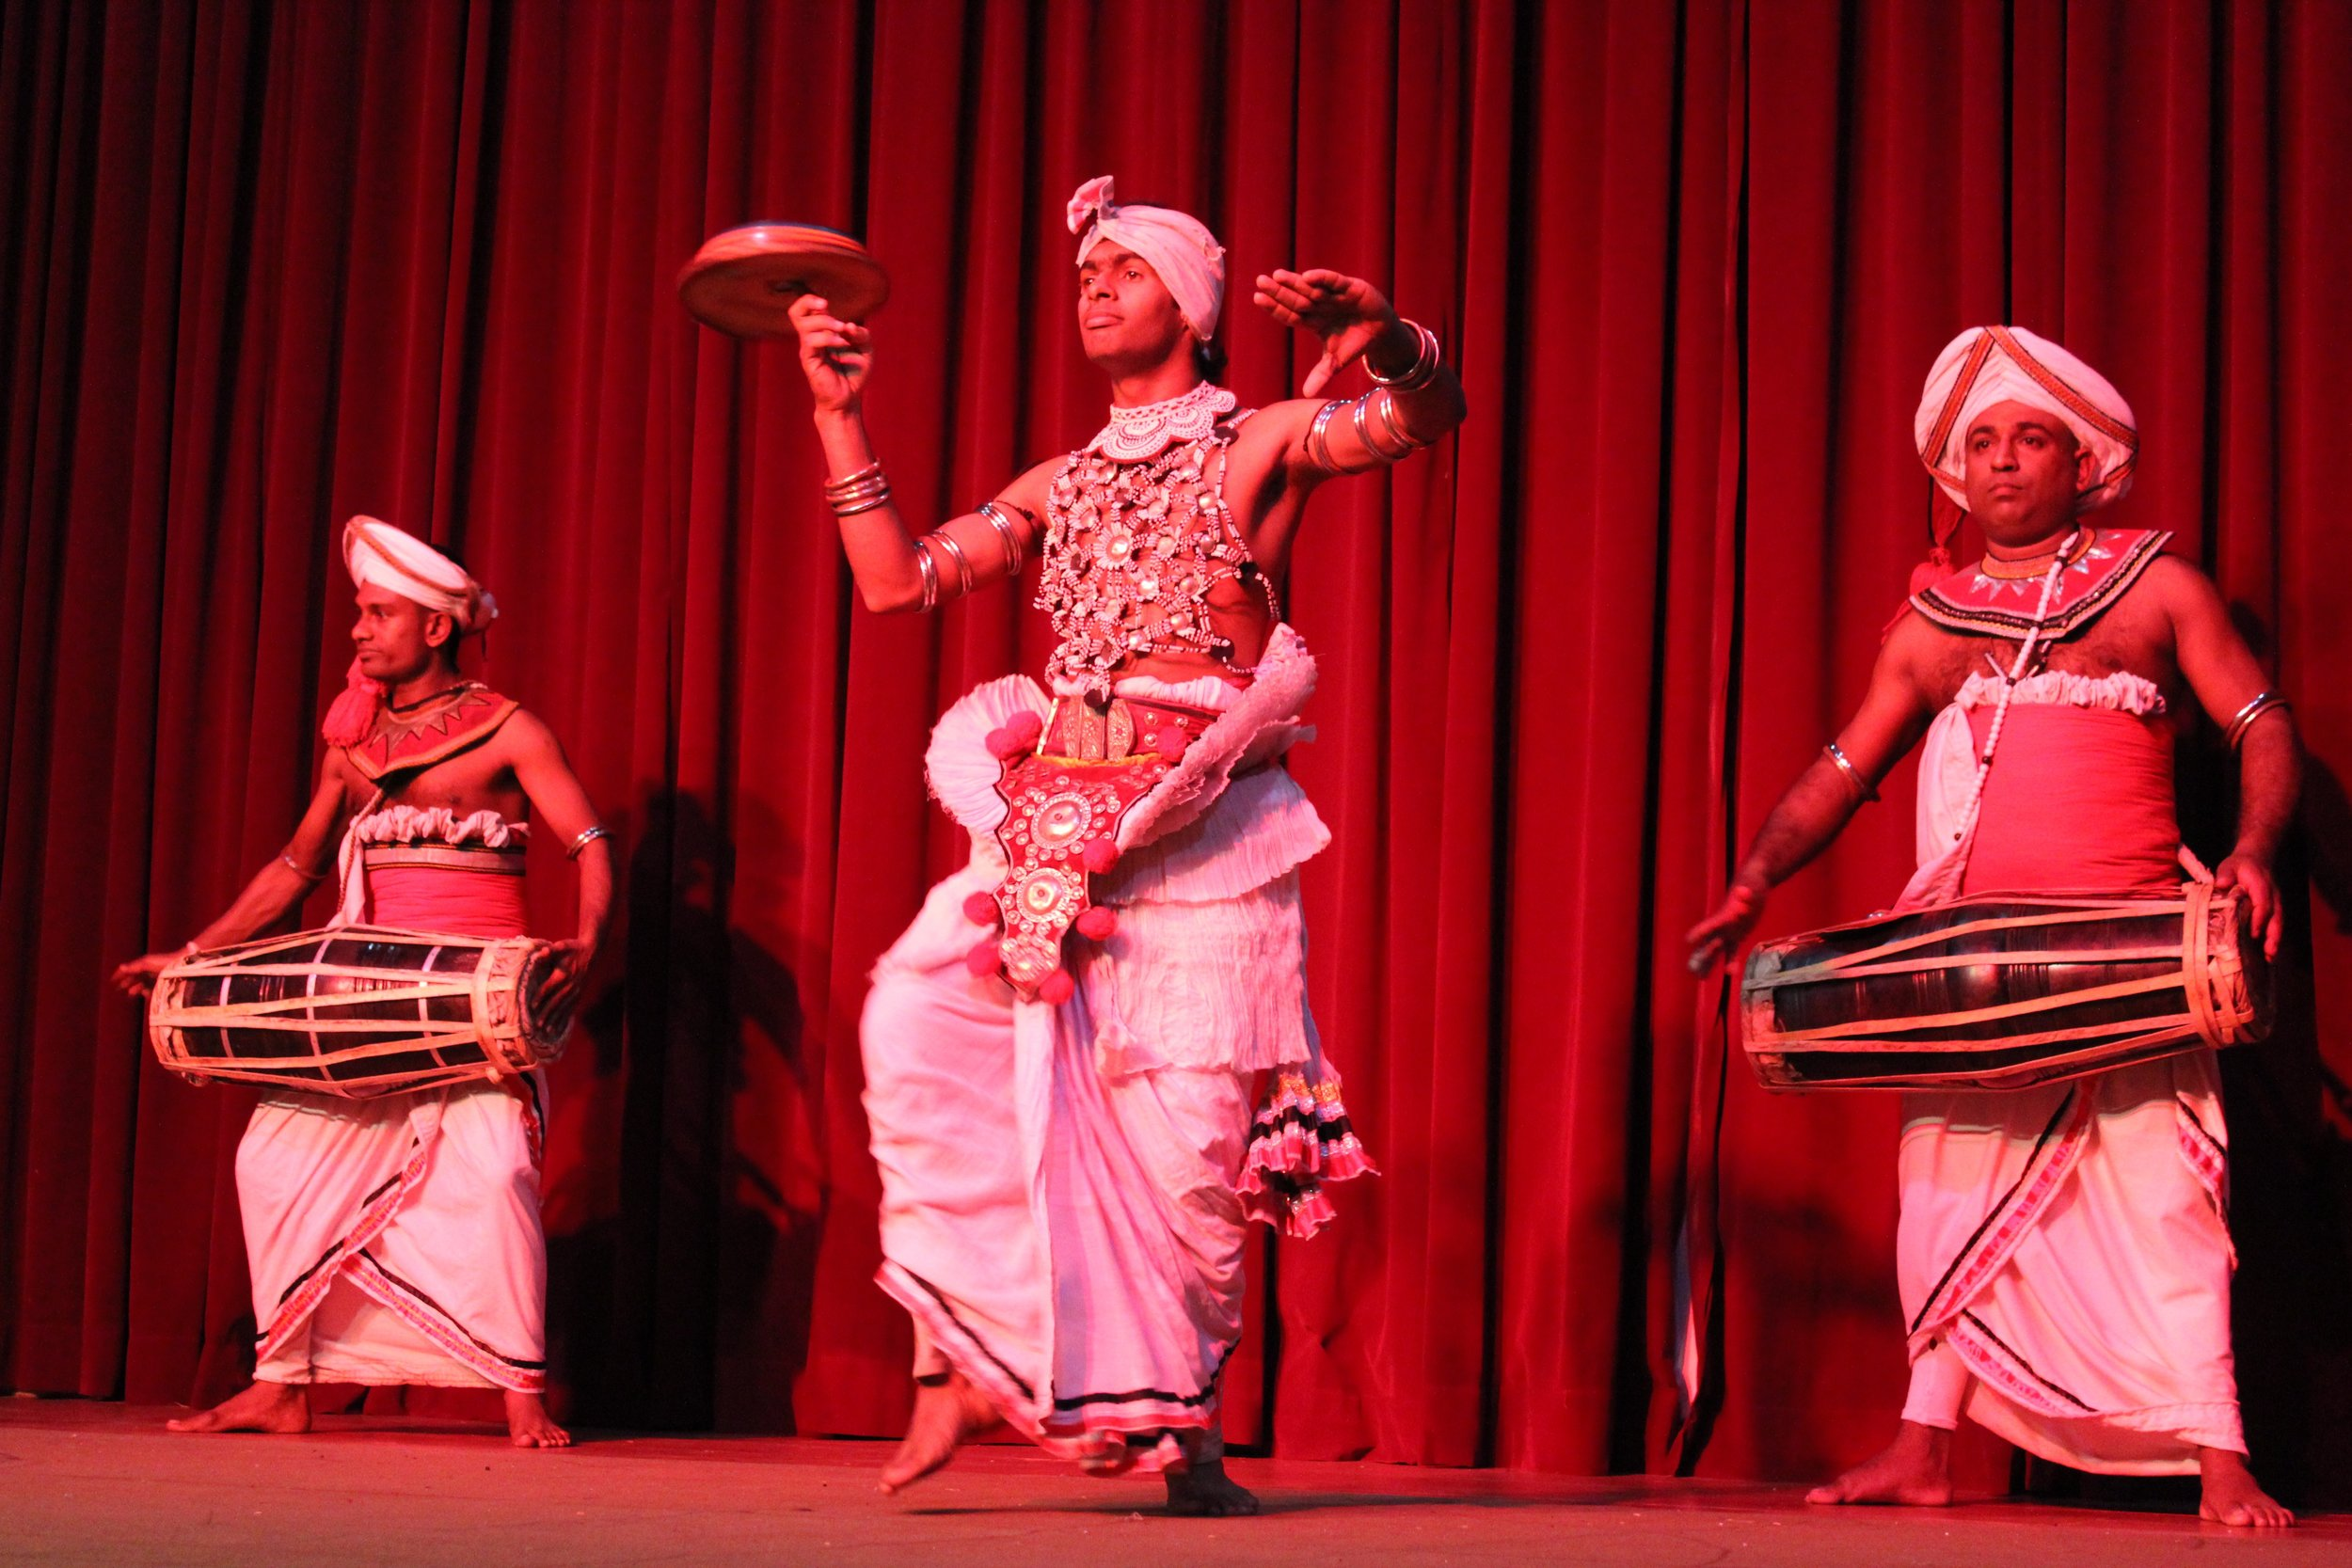 invite-to-paradise-sri-lanka-specialists-experts-travel-agent-tour-operator-kandy-cultural-dance-show-5.jpg